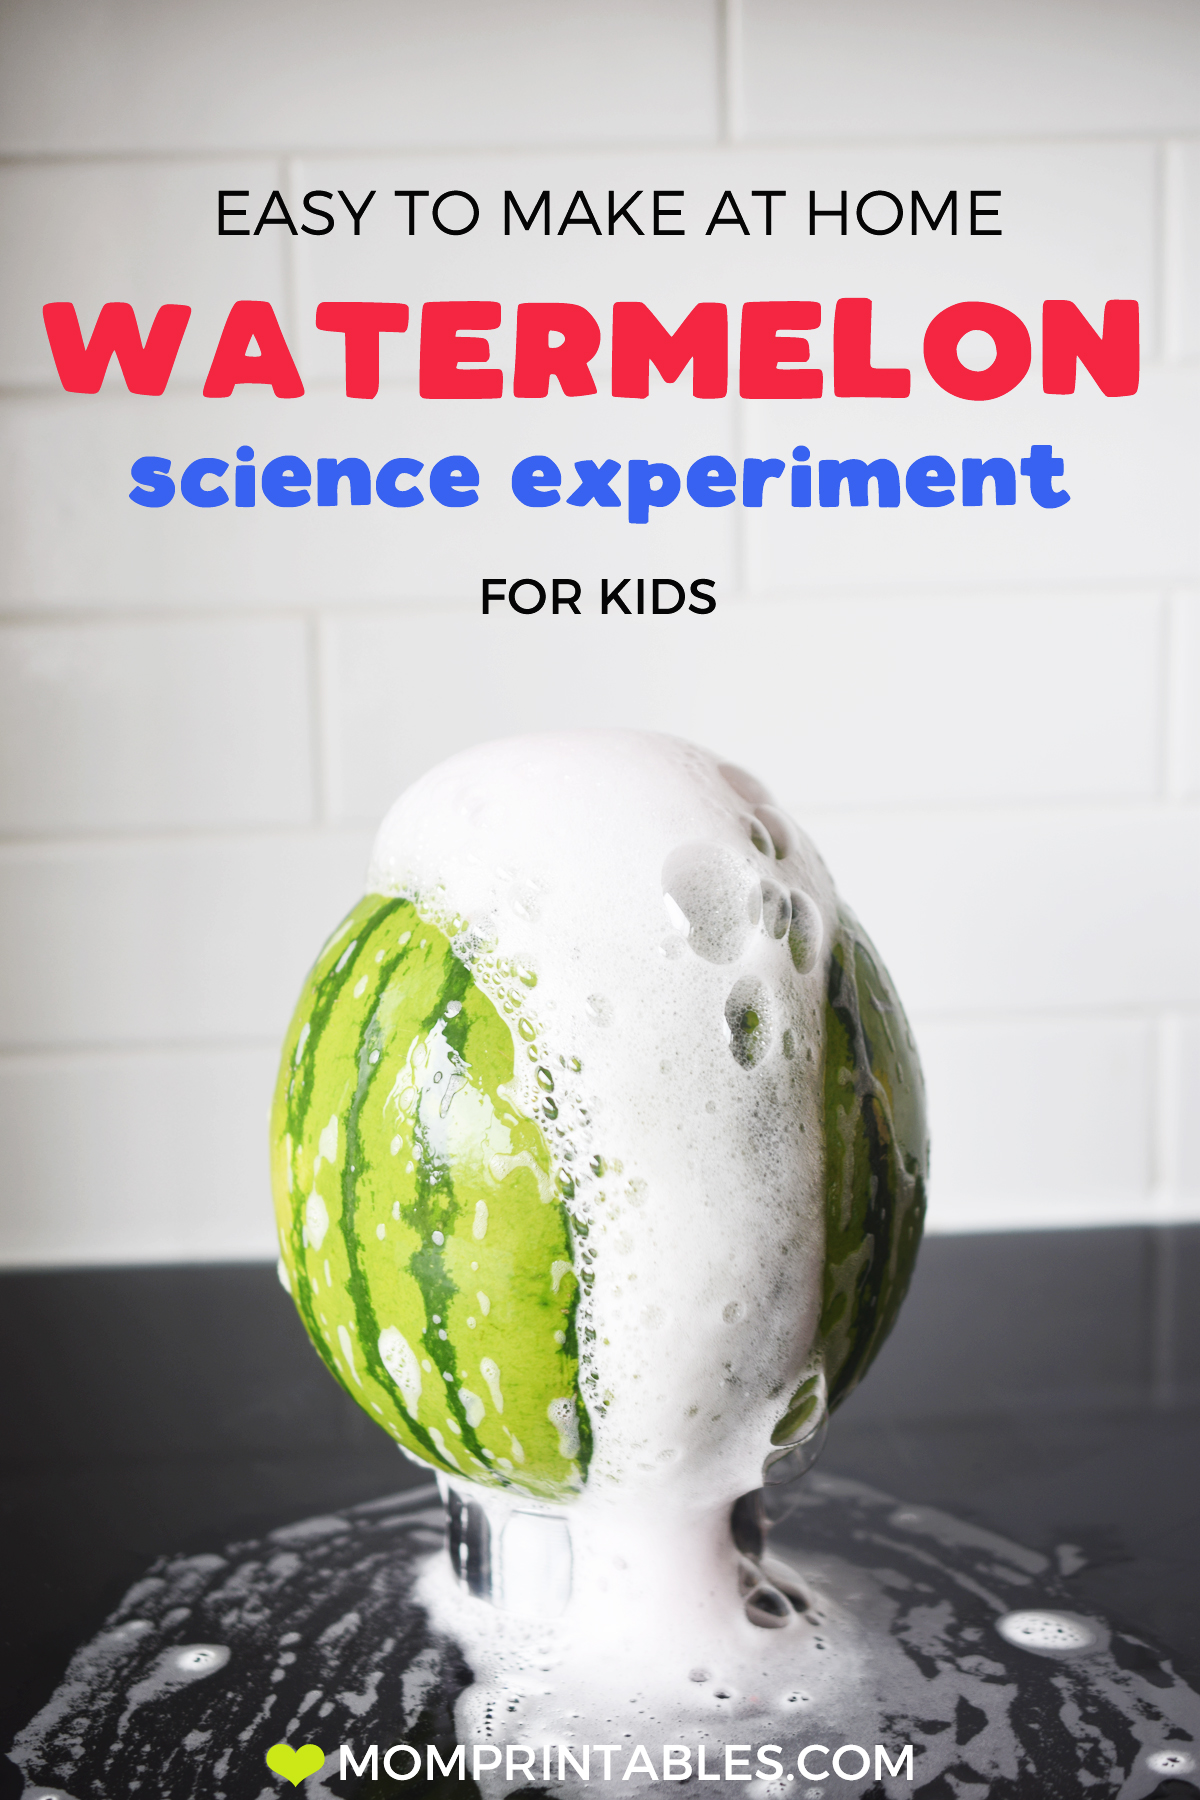 Watermelon volcano science experiment. Easy science for toddlers and preschoolers. Baking soda and vinegar science experiment. Preschool science | toddler science | for kids | small world | science experiments | baking soda | vinegar | sensory play | how to make | ideas | fun | home project | homemade | learning | activities